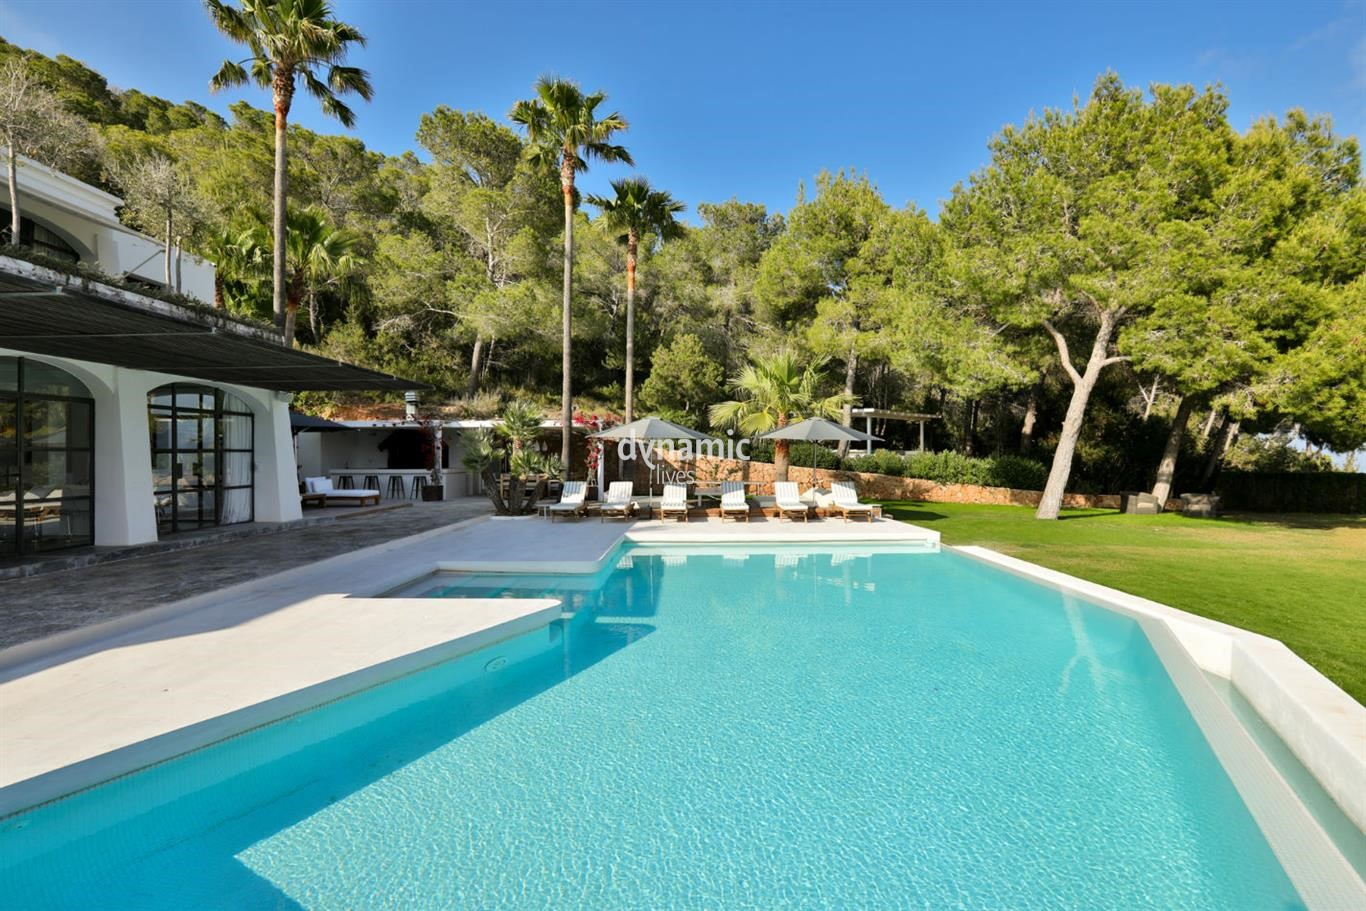 Villa of the Month: Villa Cardona in Ibiza